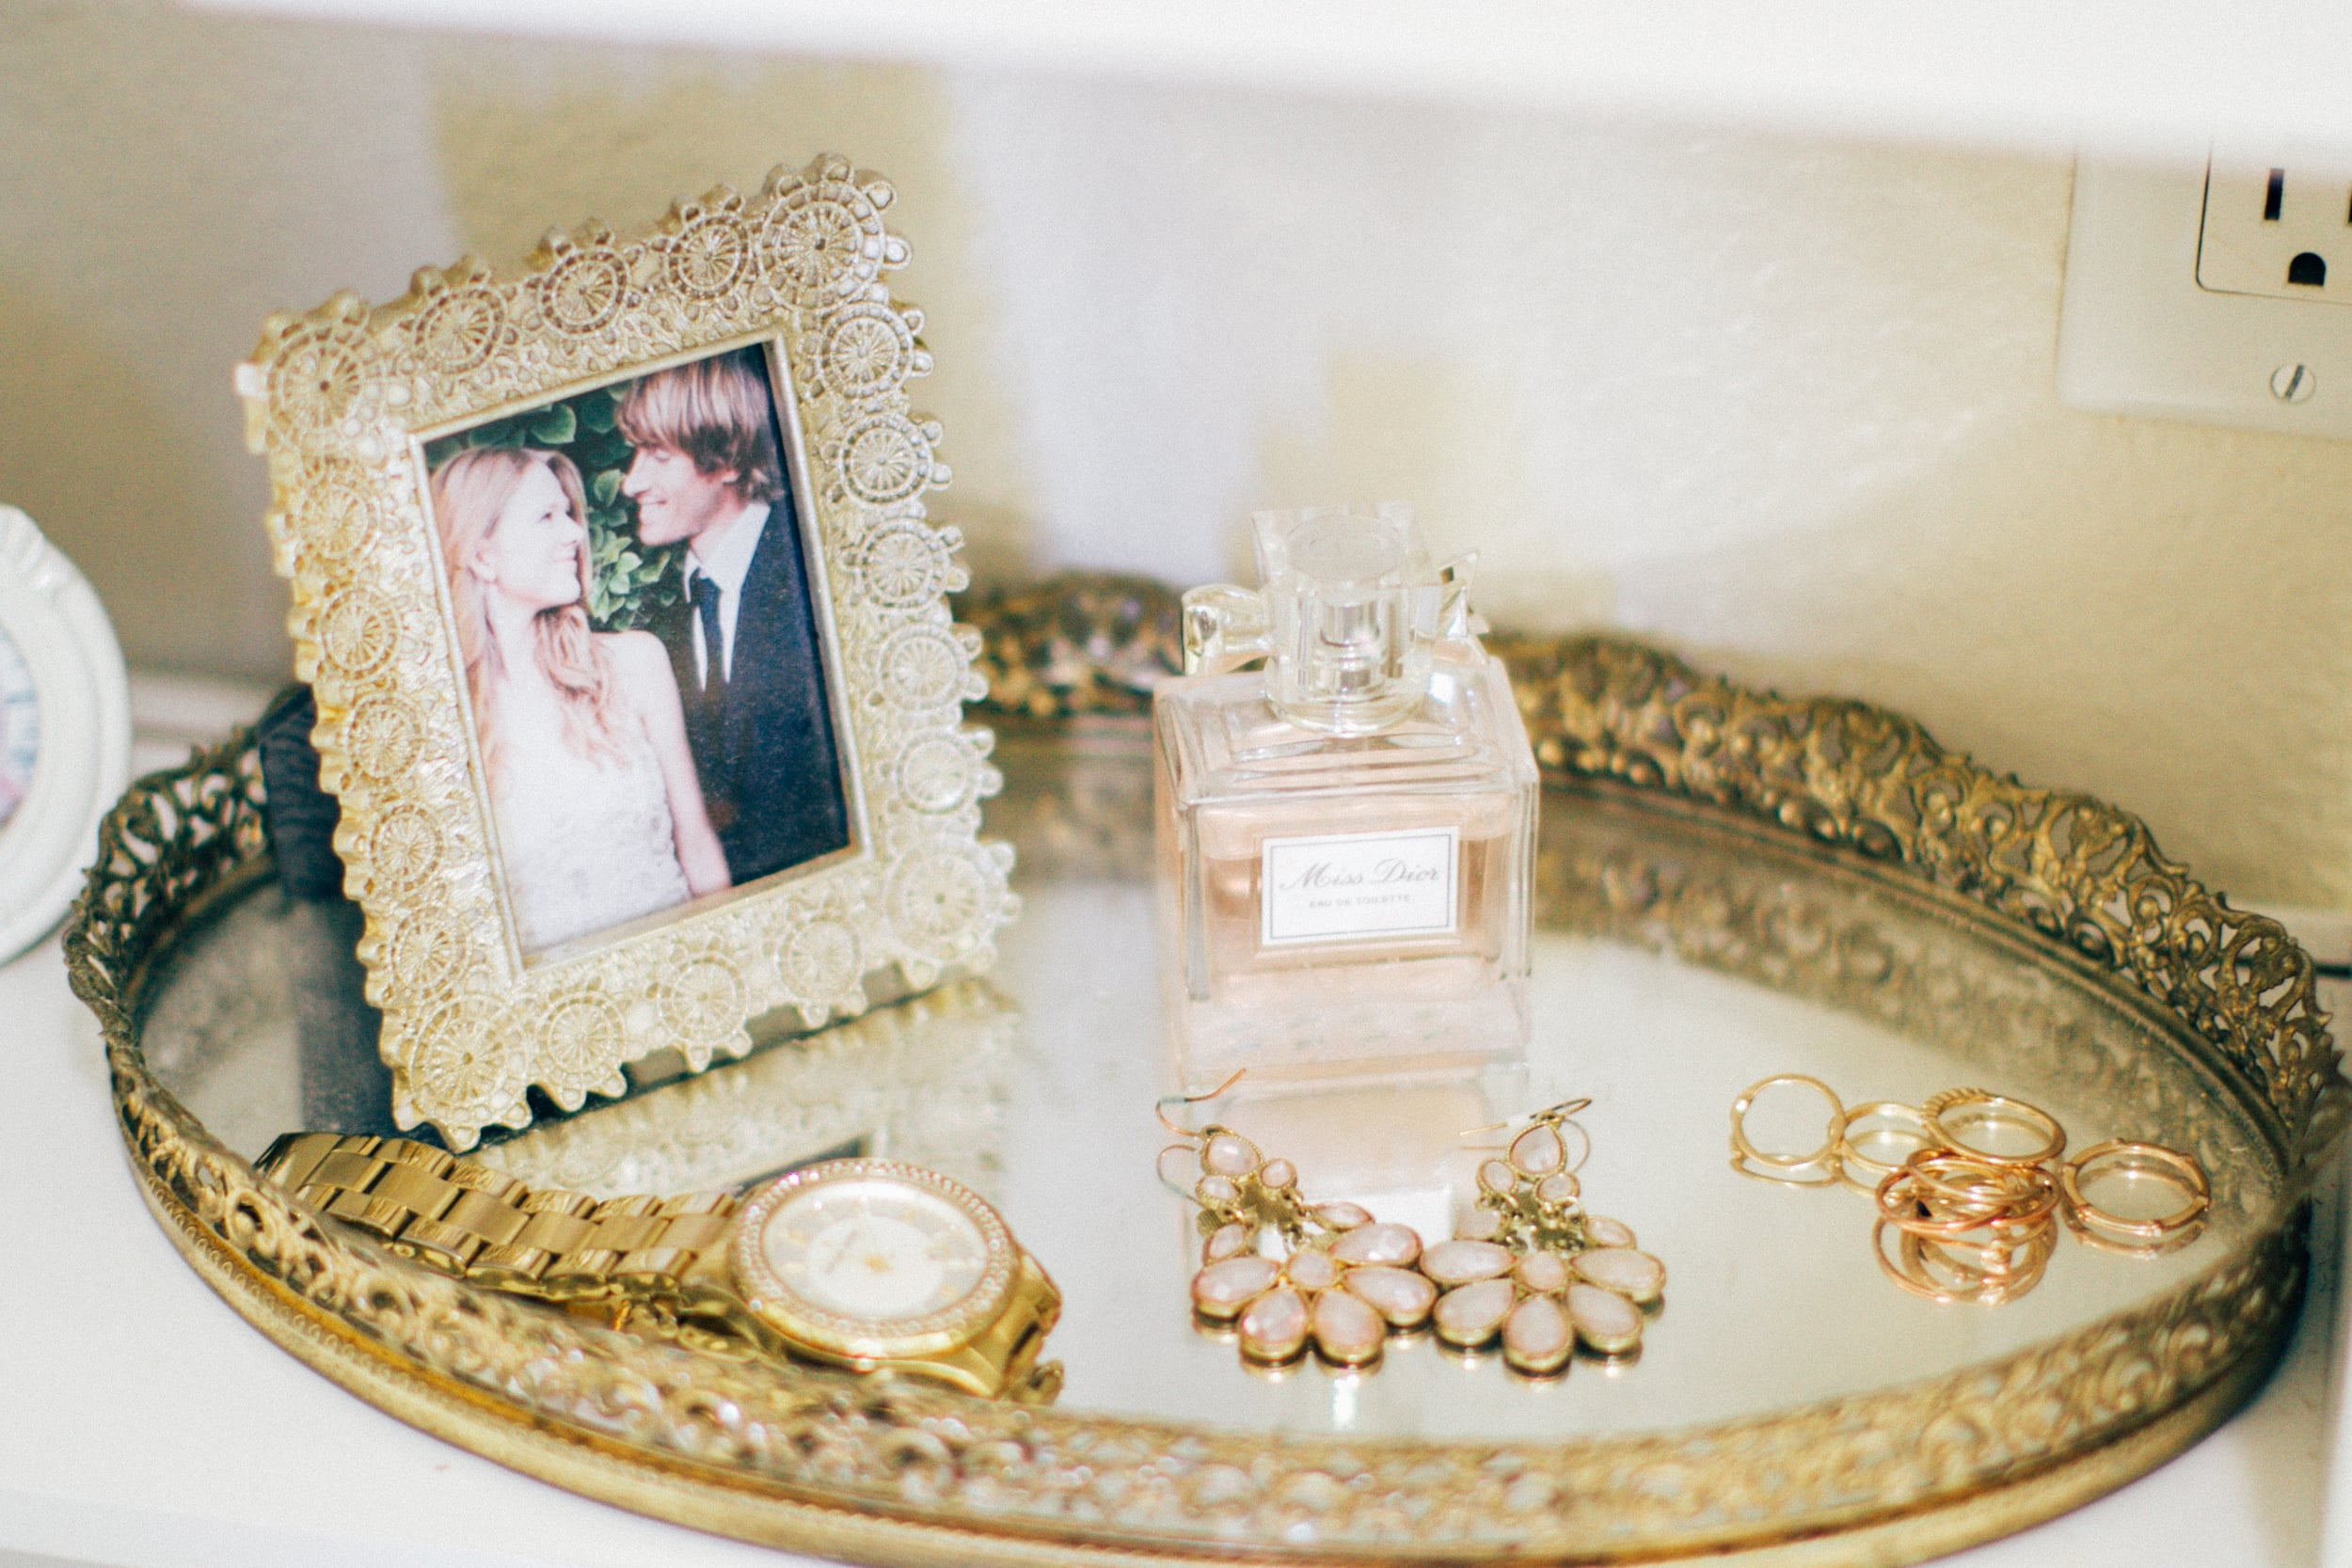 my wedding perfume + a few other favorite treasures.